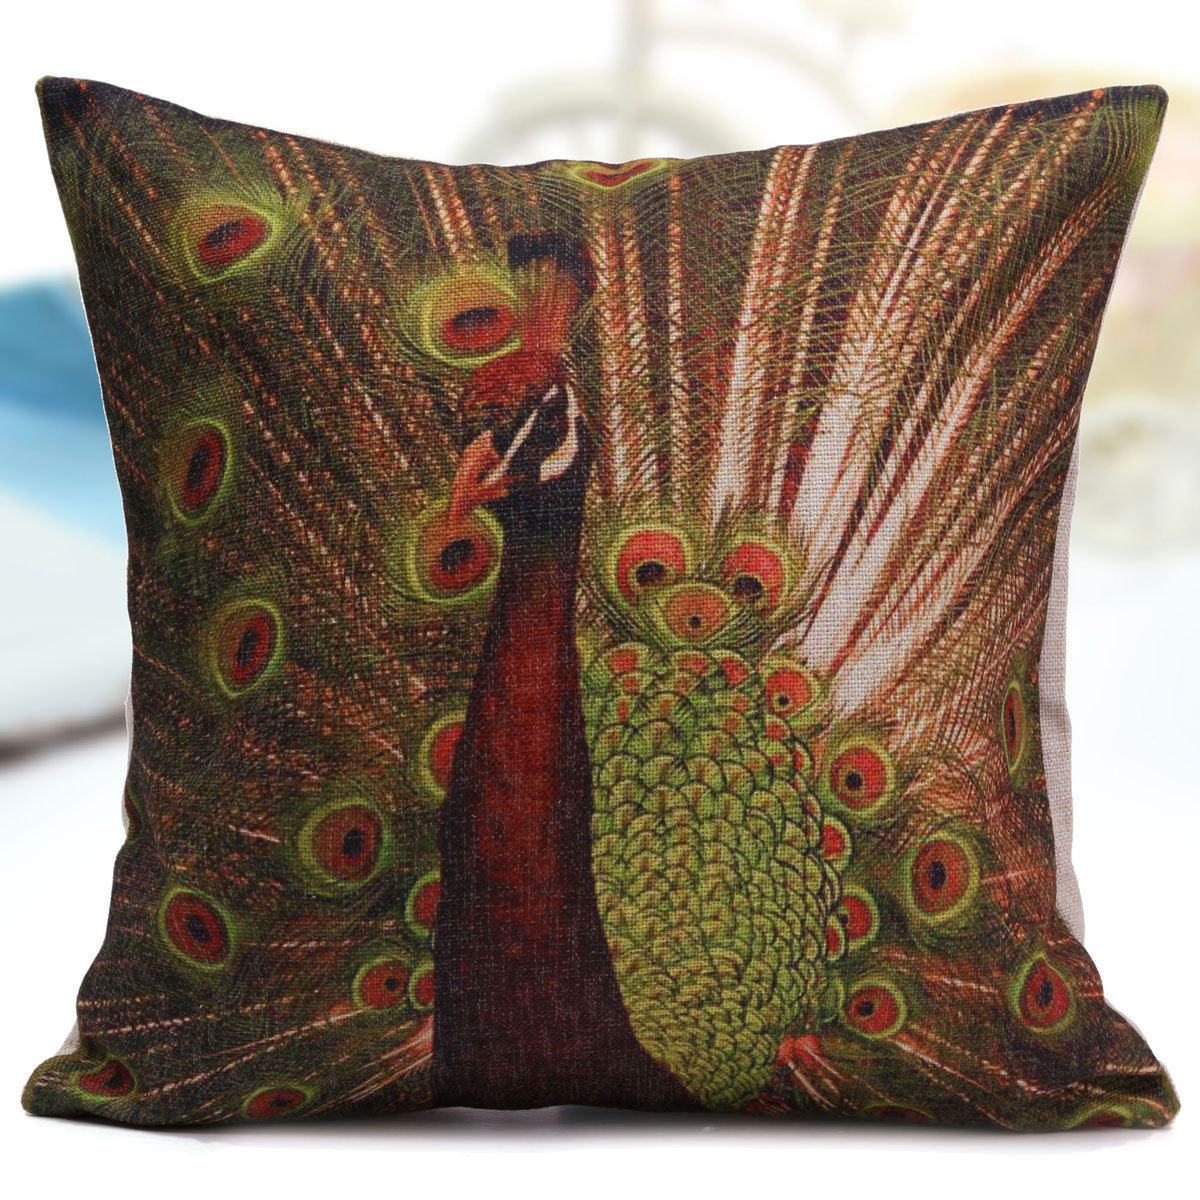 Owl Throw Pillow Covers : Cartoon Owl Cotton Linen Throw Pillow Case Cushion Cover Home Sofa Decorative eBay